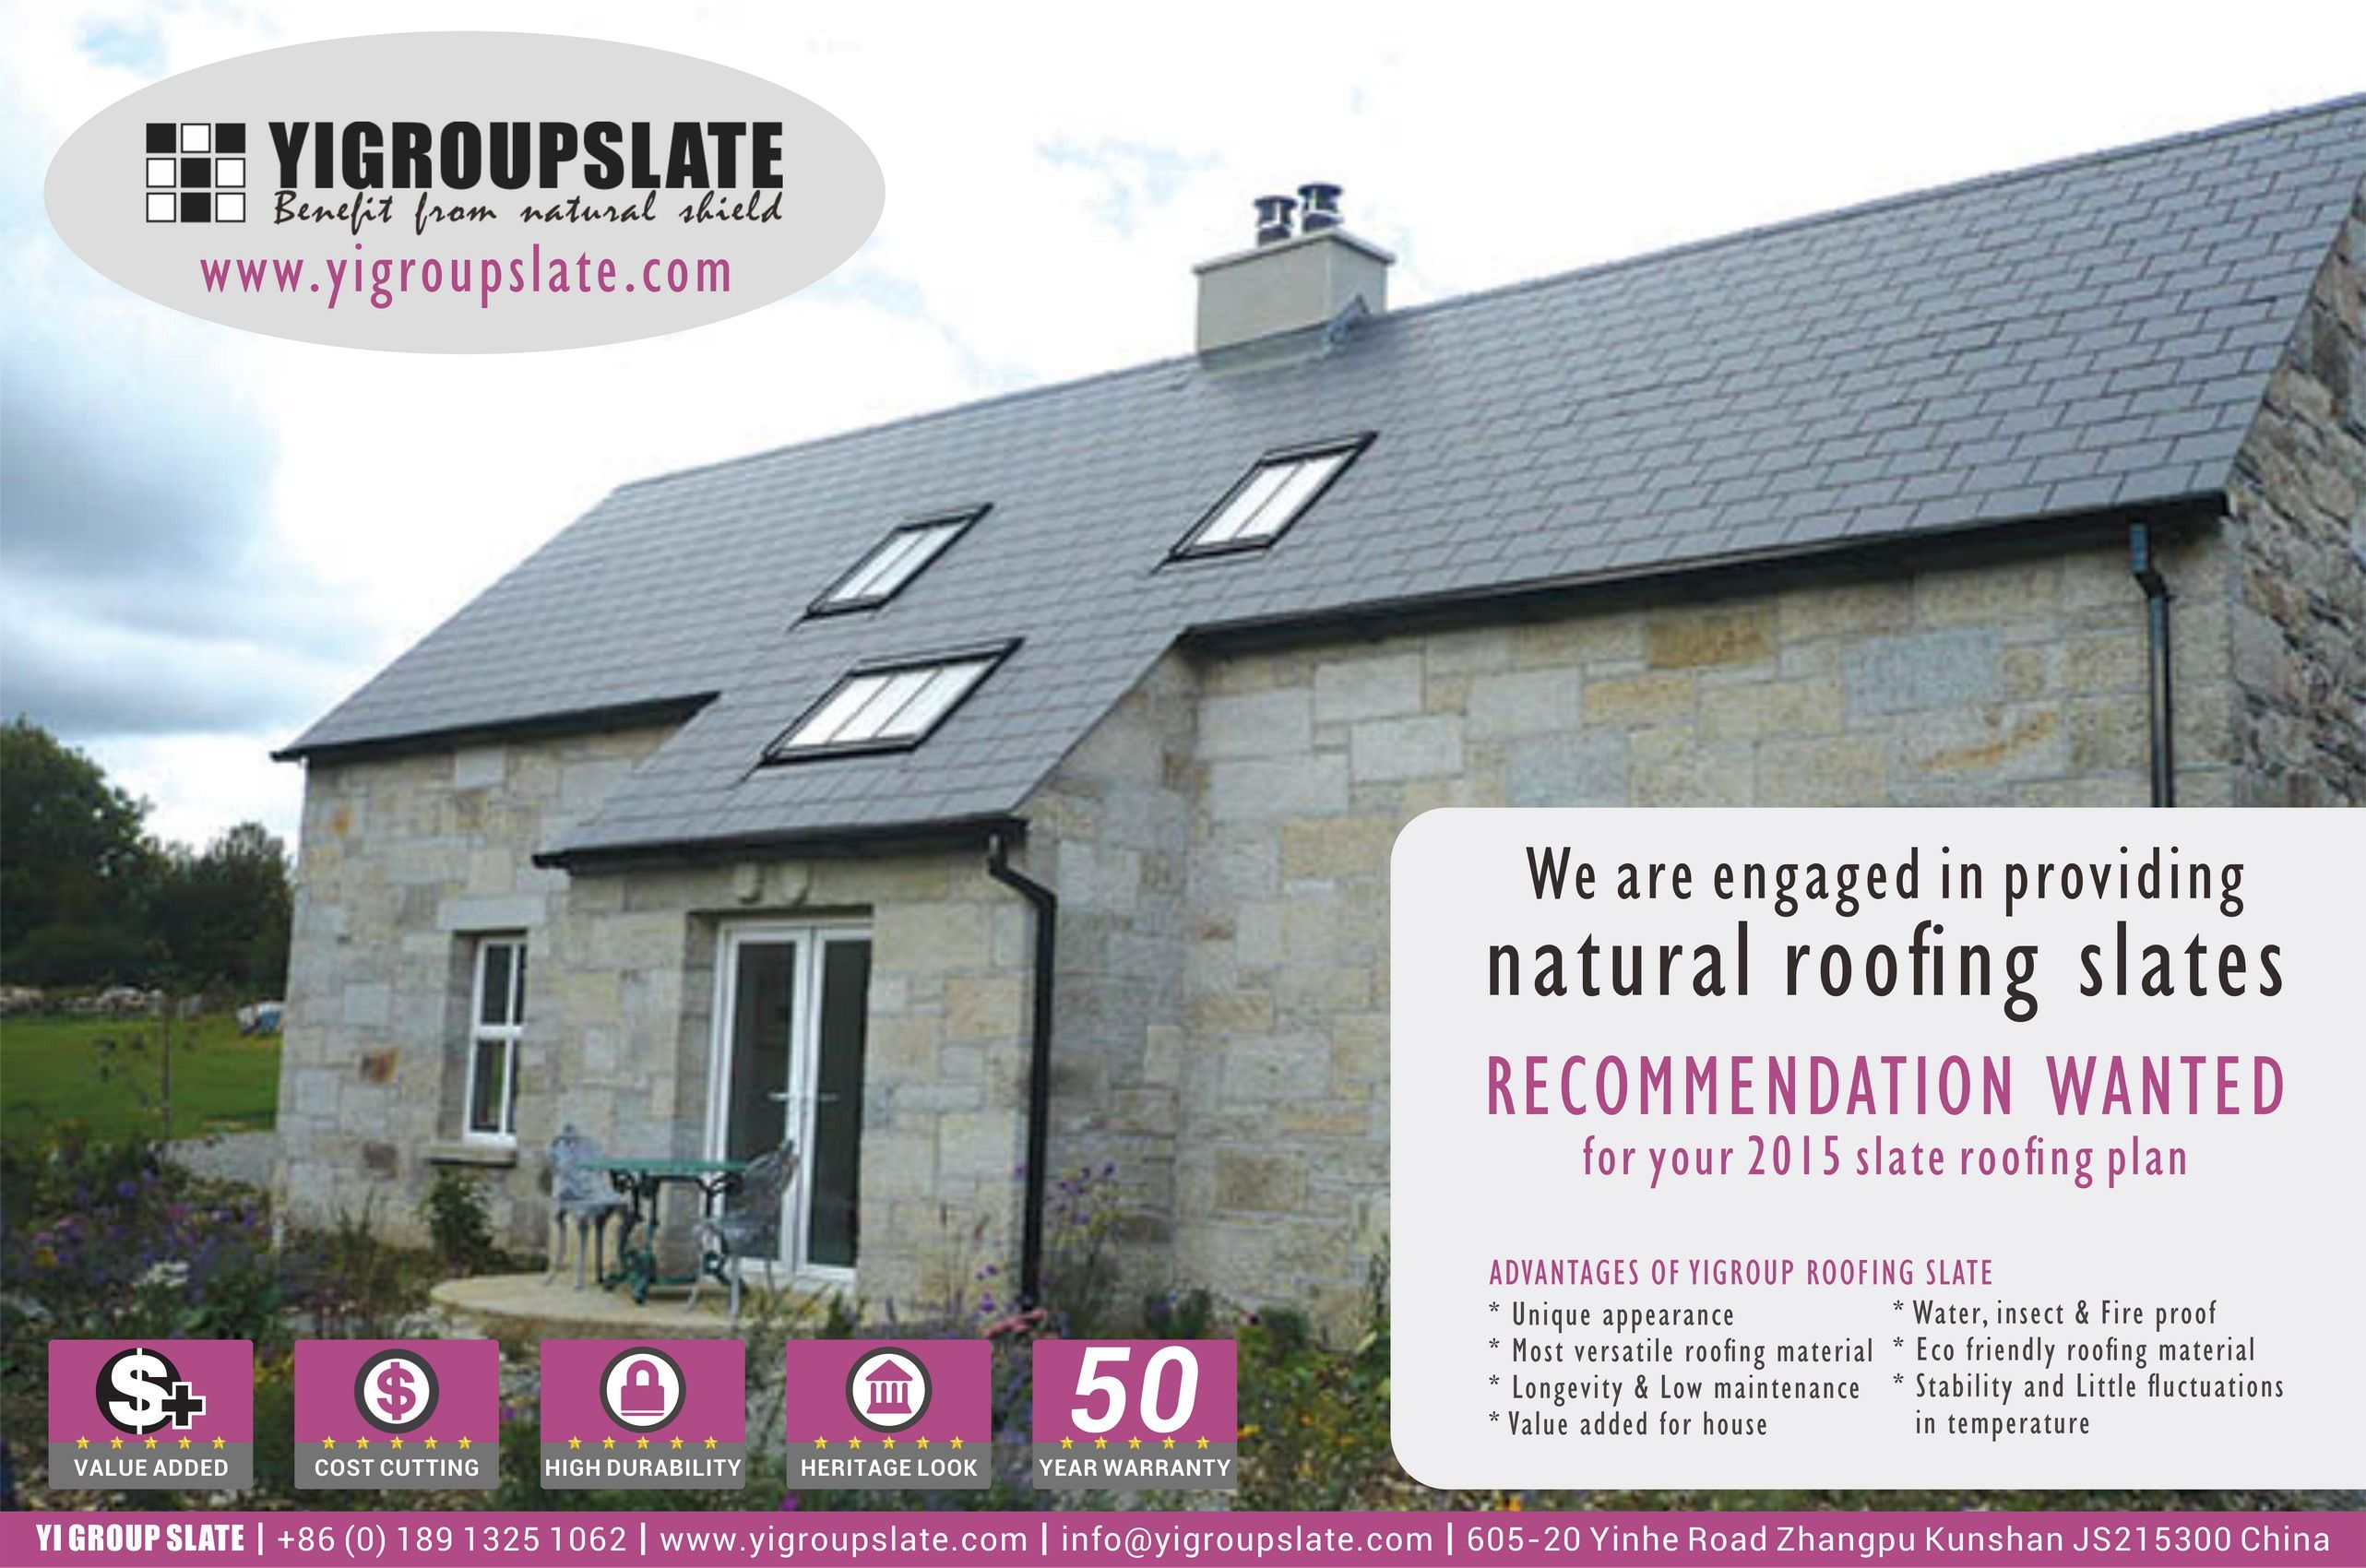 Roofing slate supplies serves for your natural roofing slates